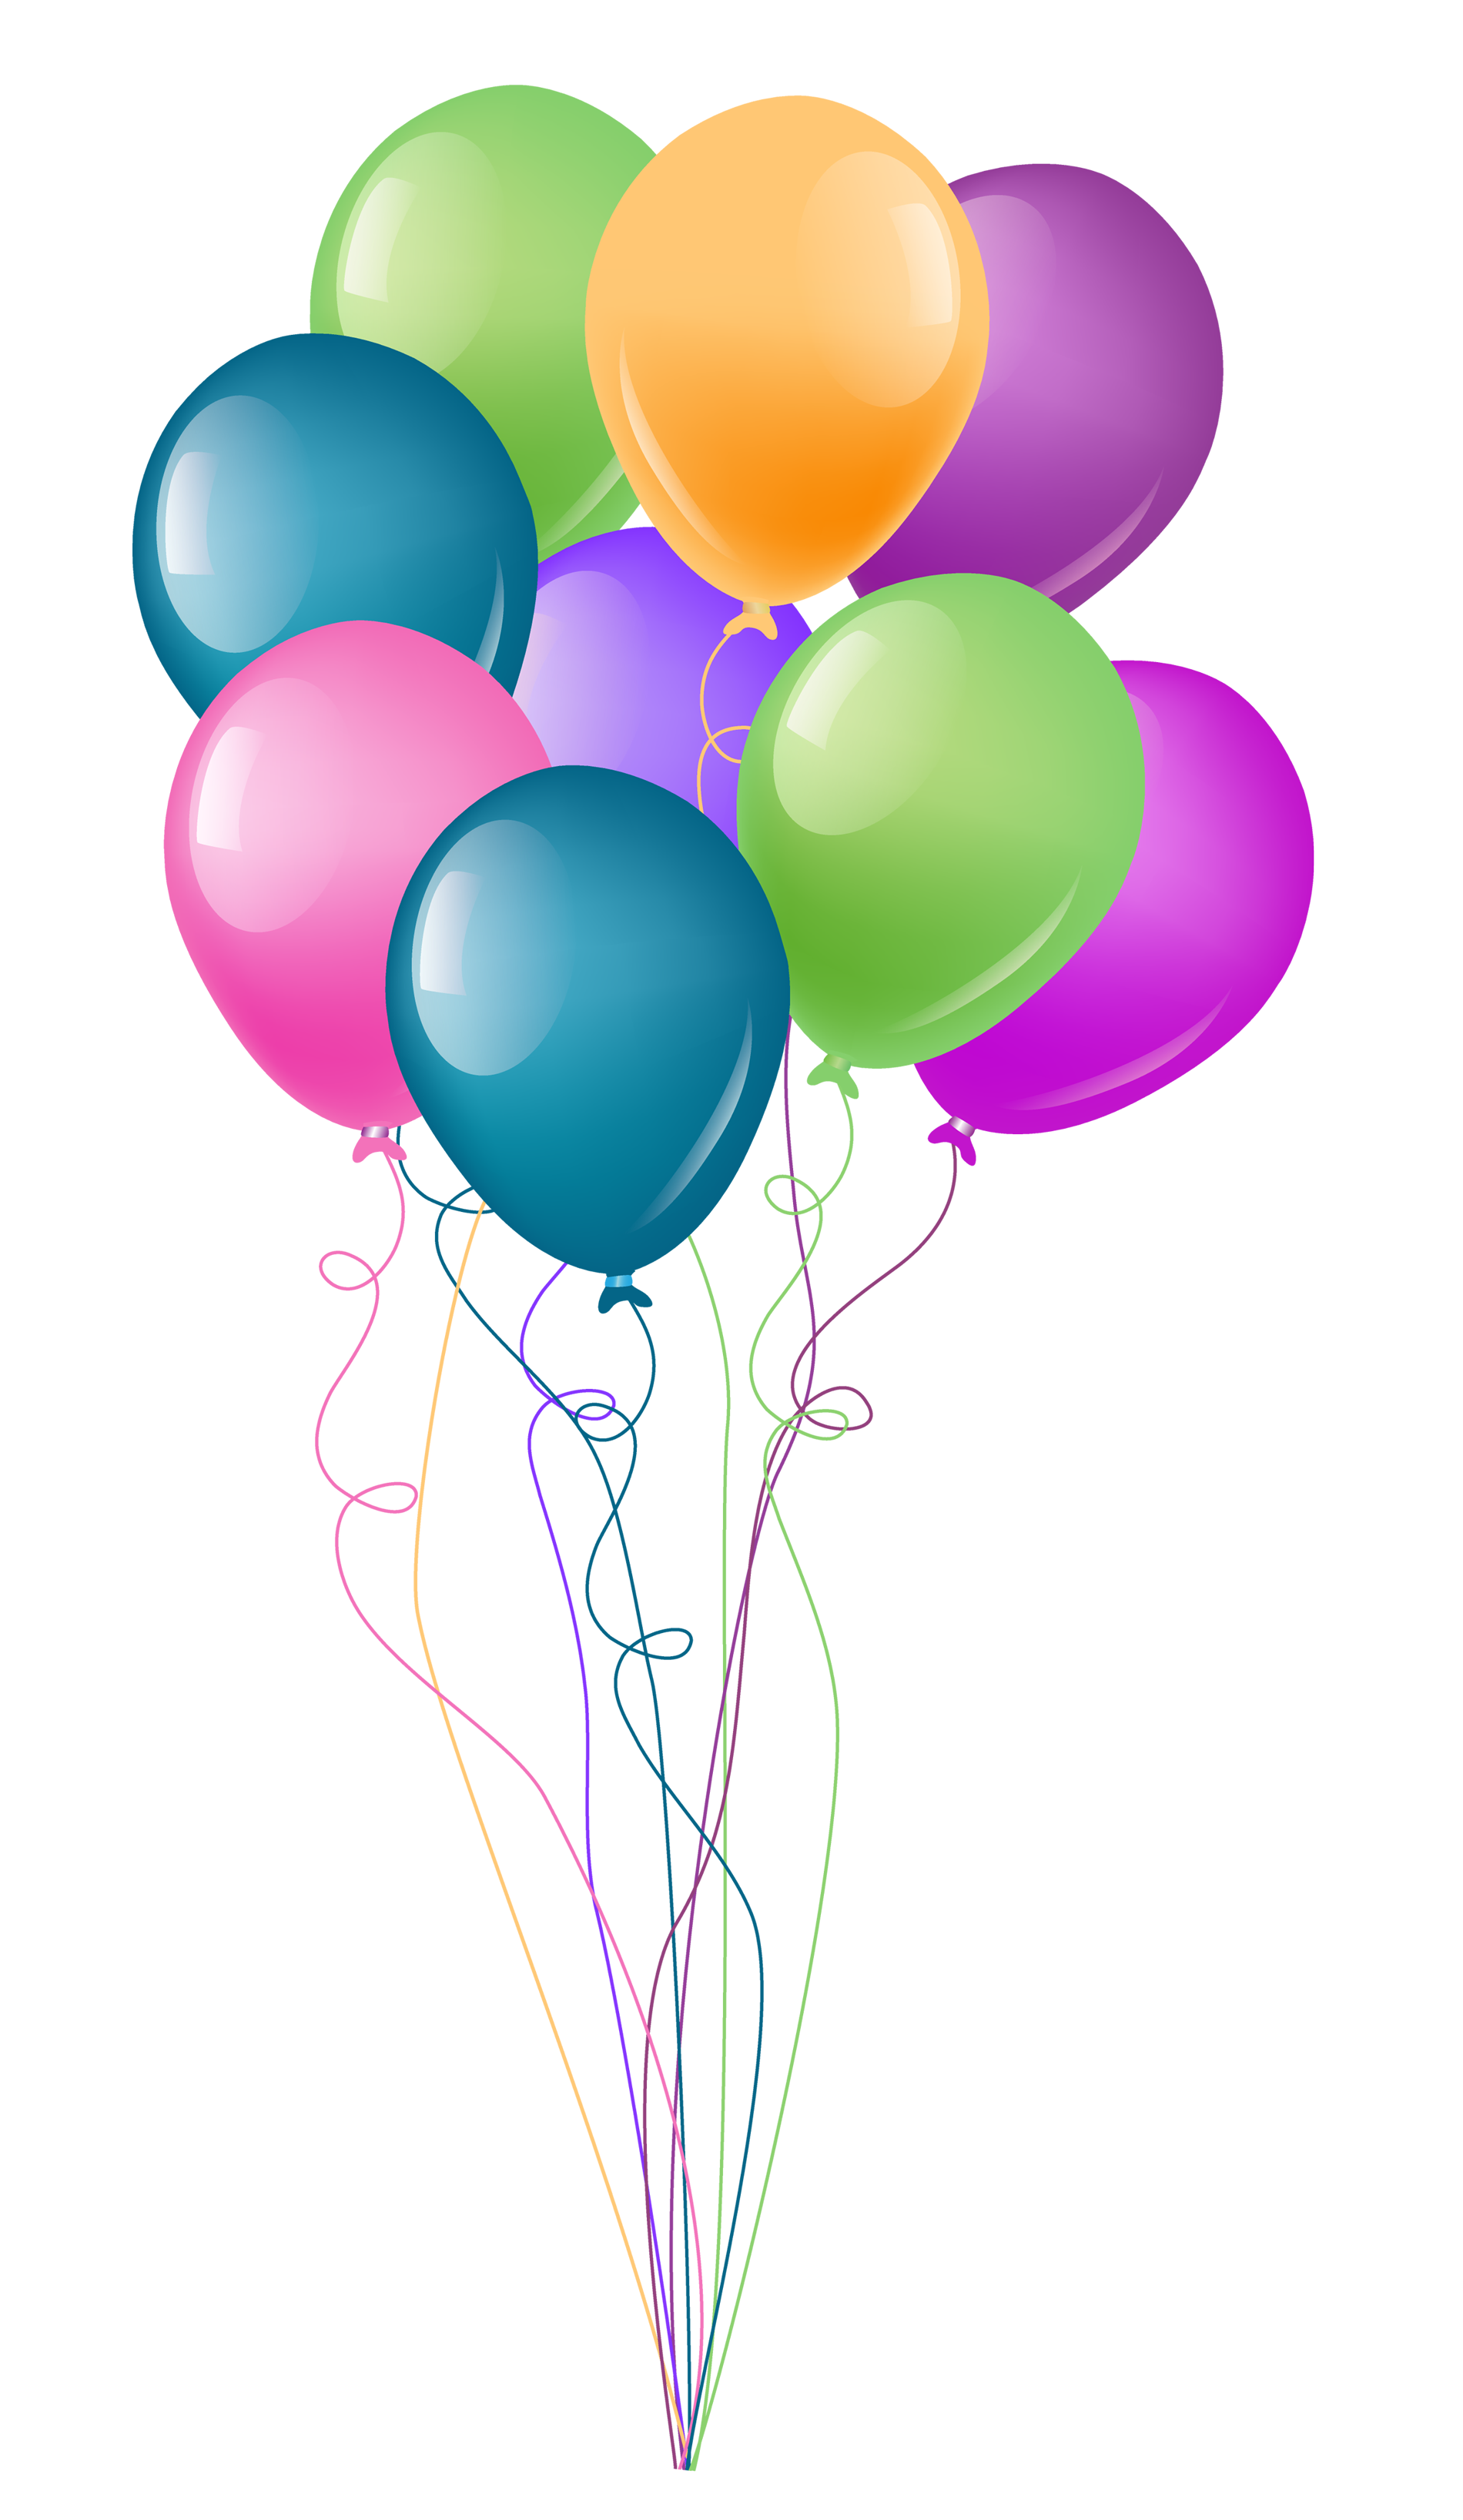 High definition balloons png. Hd images newwallpapers org